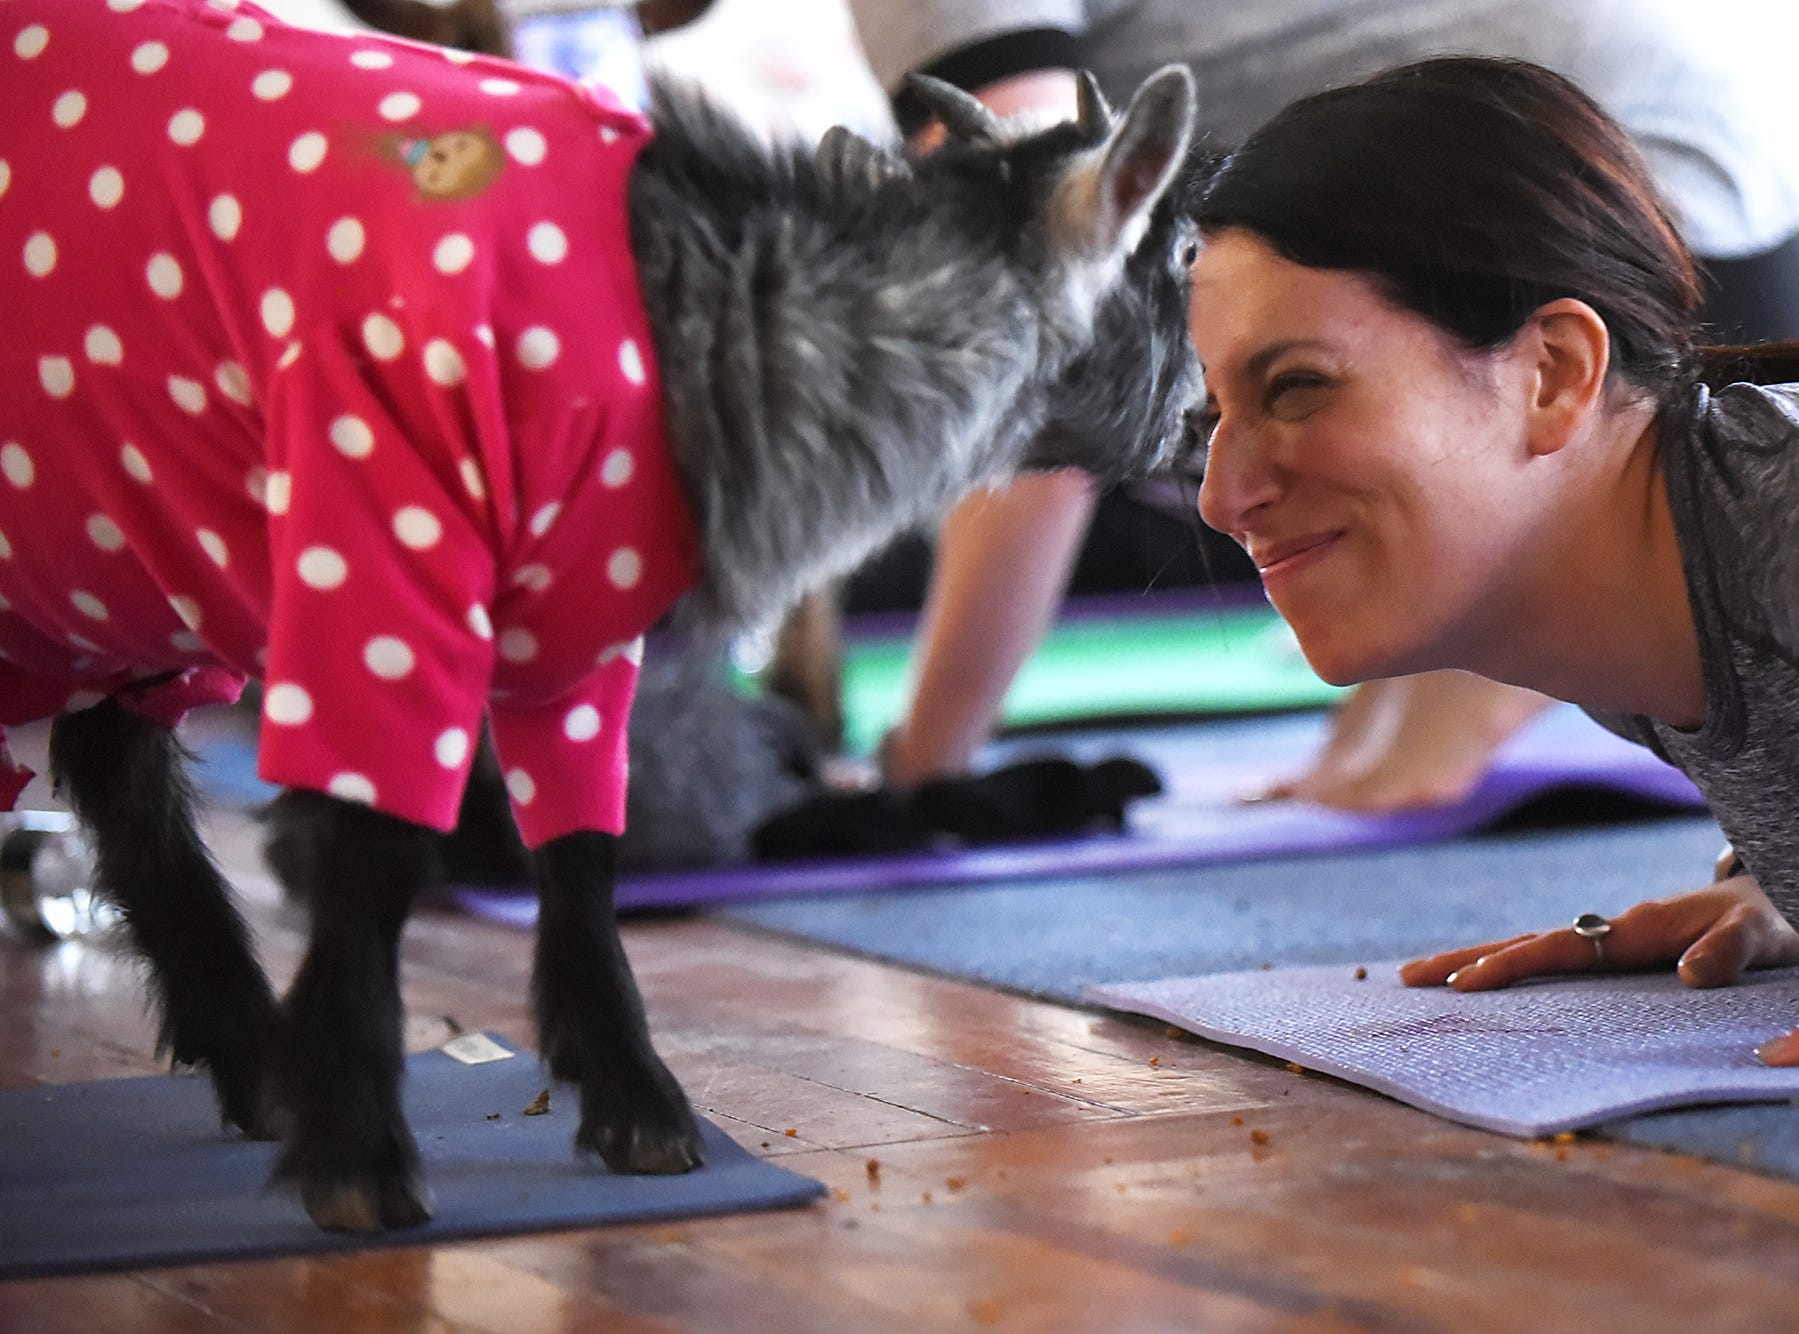 Totes Goats yoga class at the New Weis Center in Ringwood, NJ on Saturday April 07, 2018. Maria Palmer gets a visit from Mica during cobra pose.